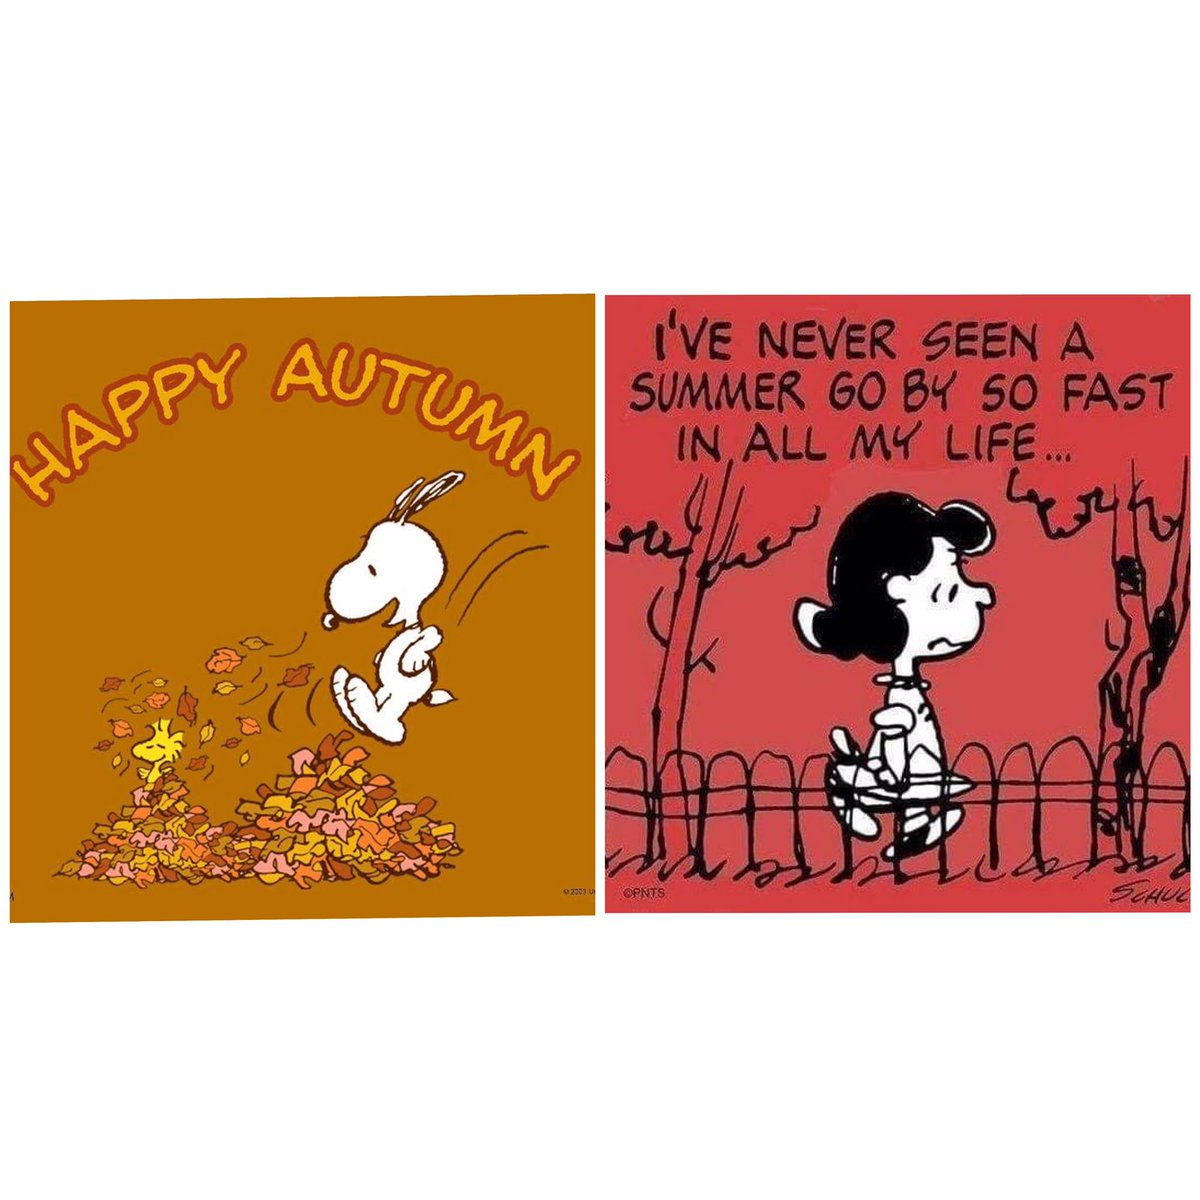 Happy Autumn!! 🎃🍁. It's the most wonderful time of the year  #happyautumn #byesummer #TuesdayThoughts